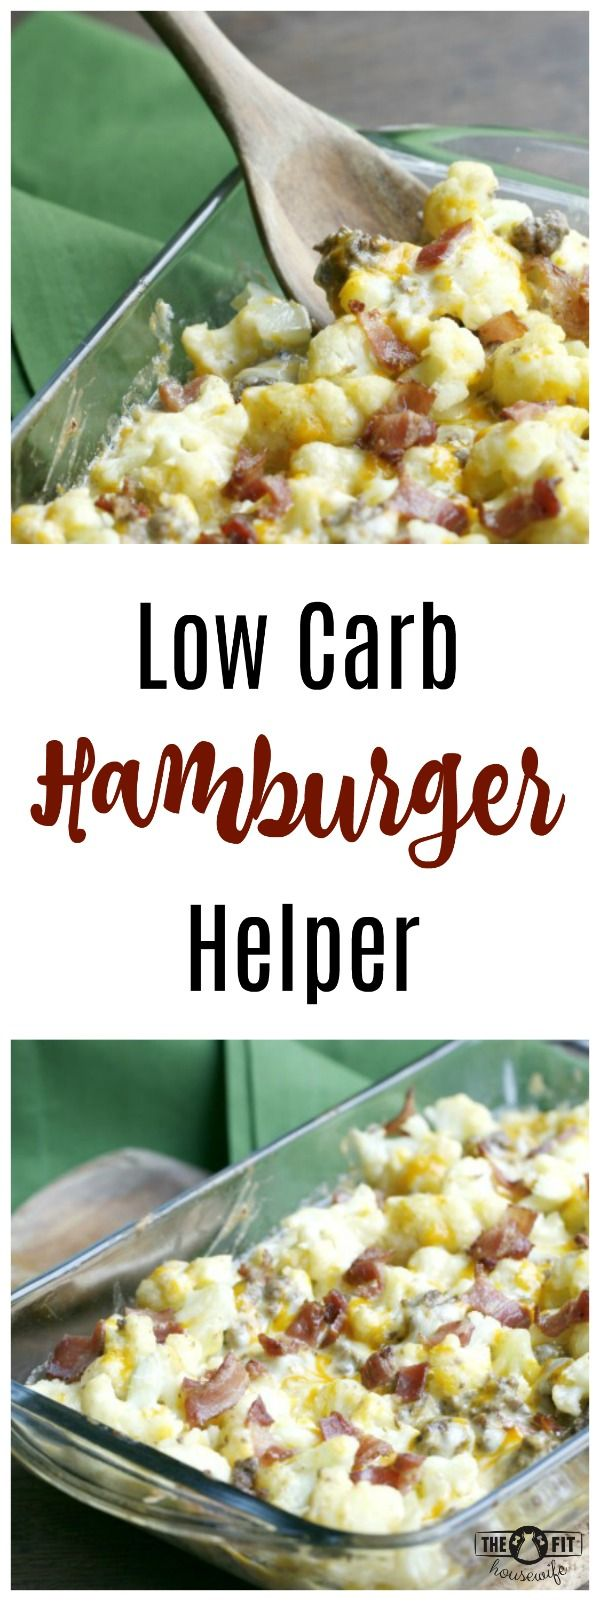 Low Carb Hamburger Helper. Make my delicious and low carb version! Low Carb, Keto, Gluten Free, Grain Free, Soy Free, Sugar Free